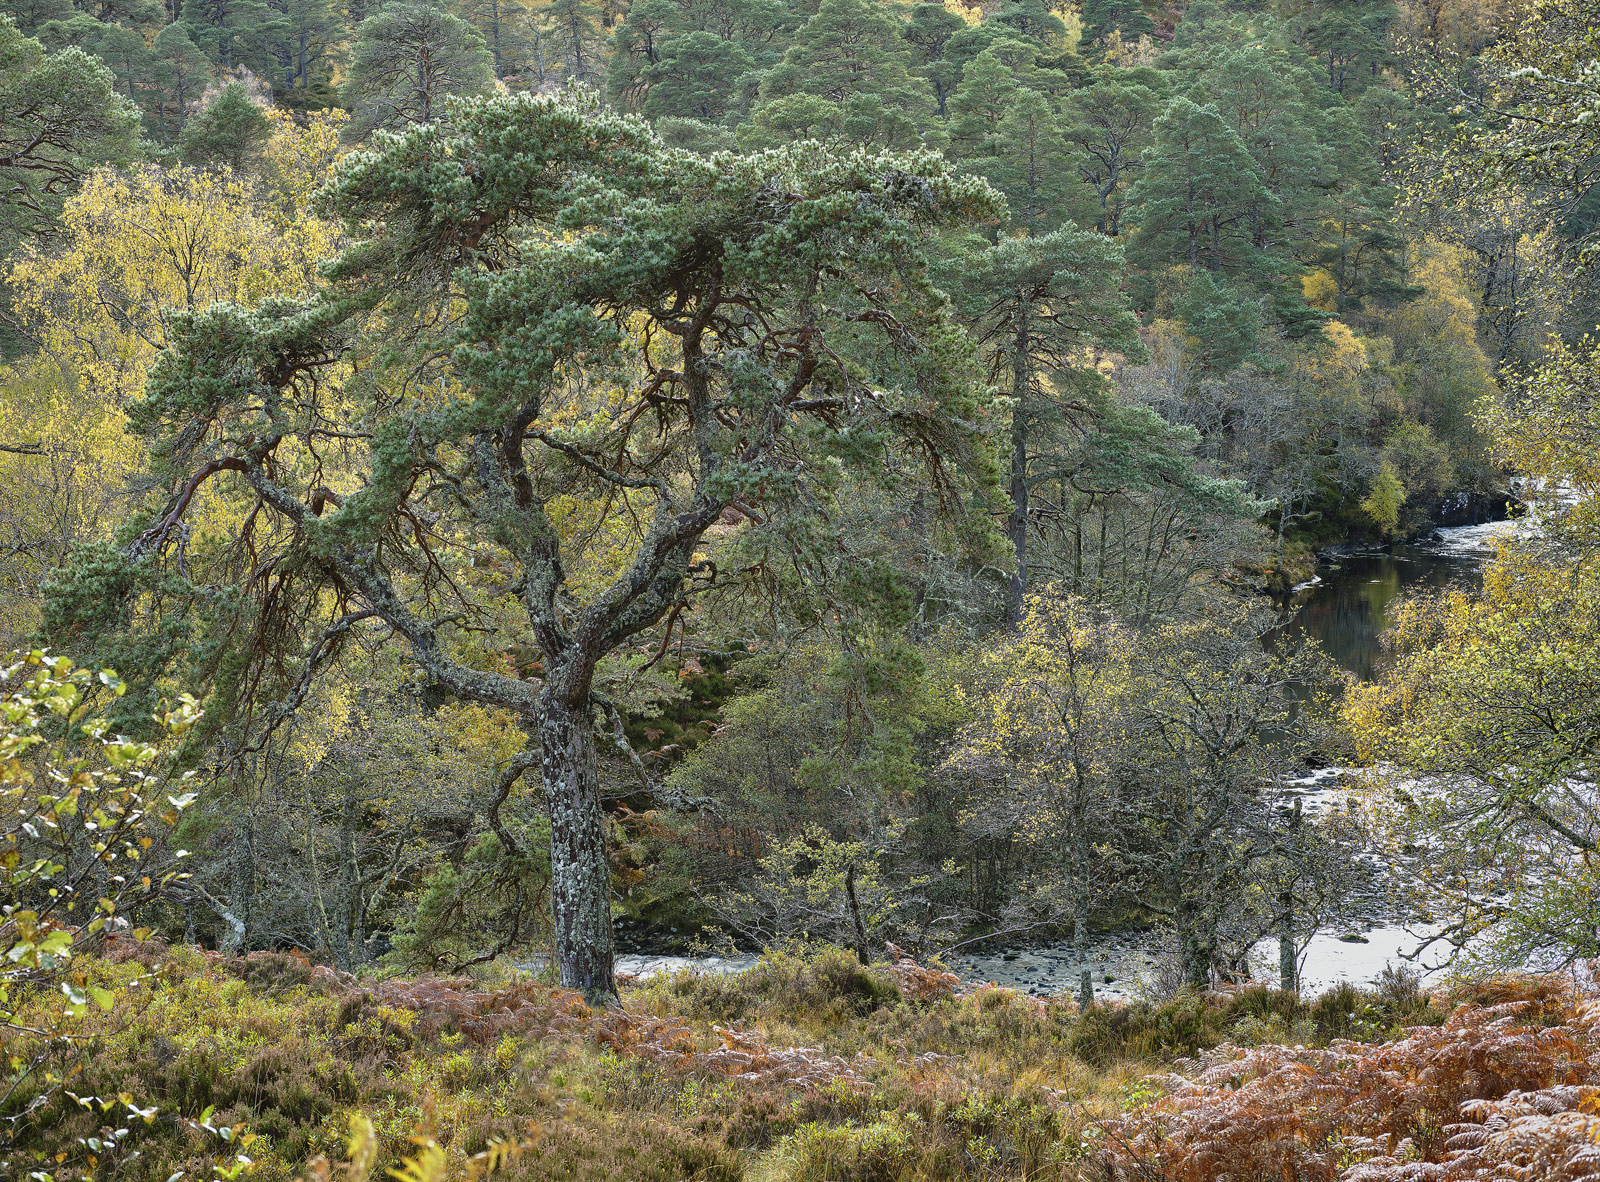 Native Woodland Strathfarrar, Strathfarrar, Highlands, Scotland, scots pine, birch, golden, canopy, tortured, twisted li, photo